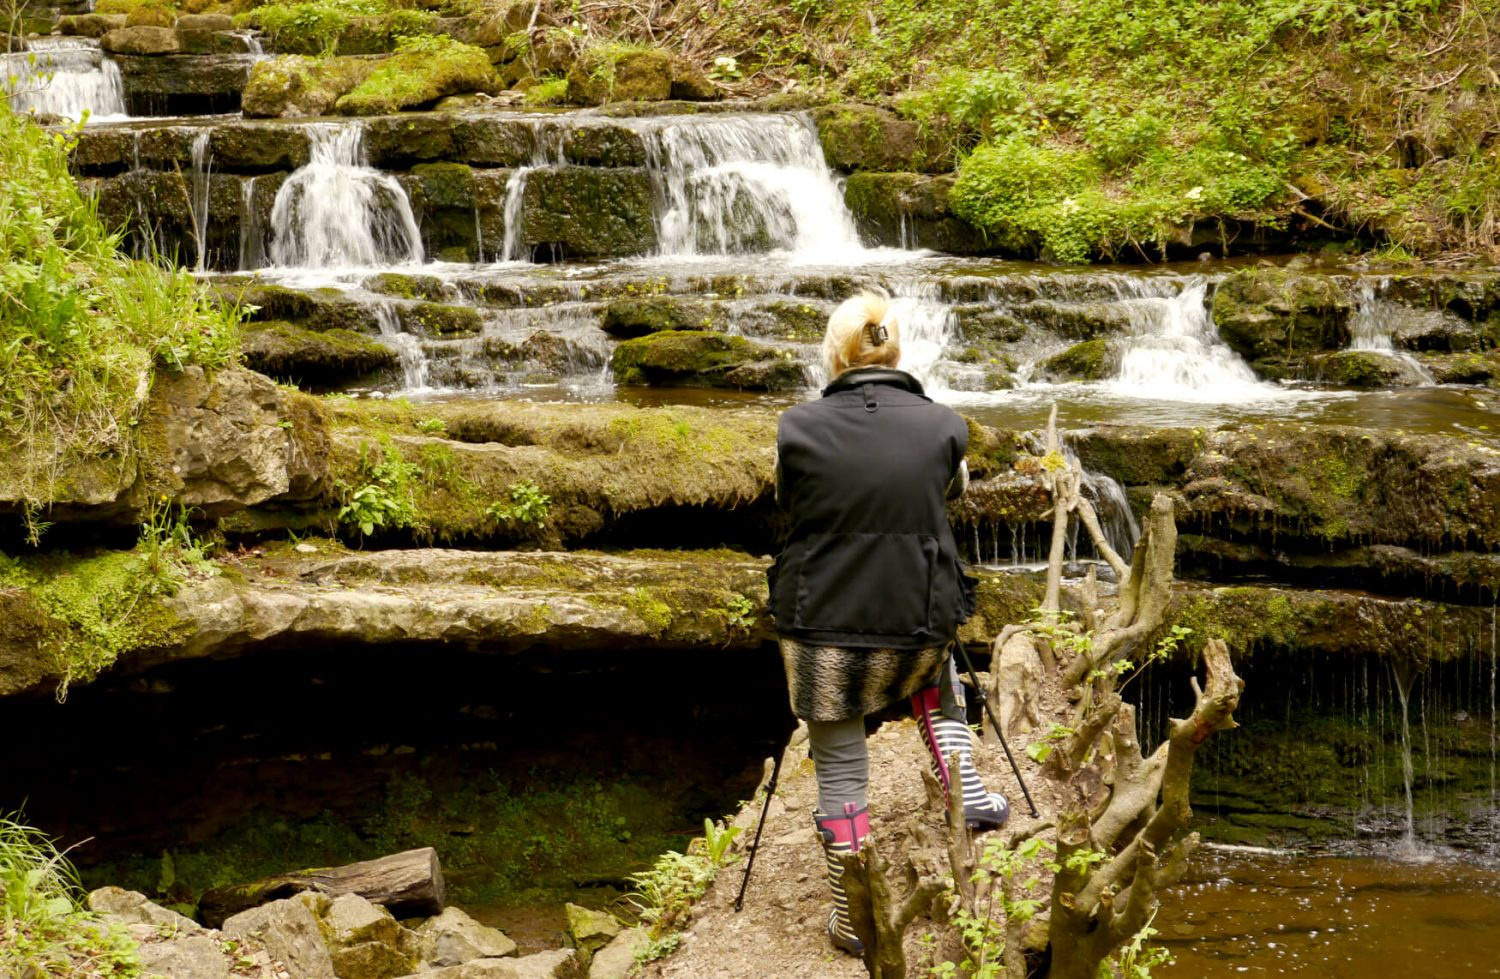 Gill taking pictures